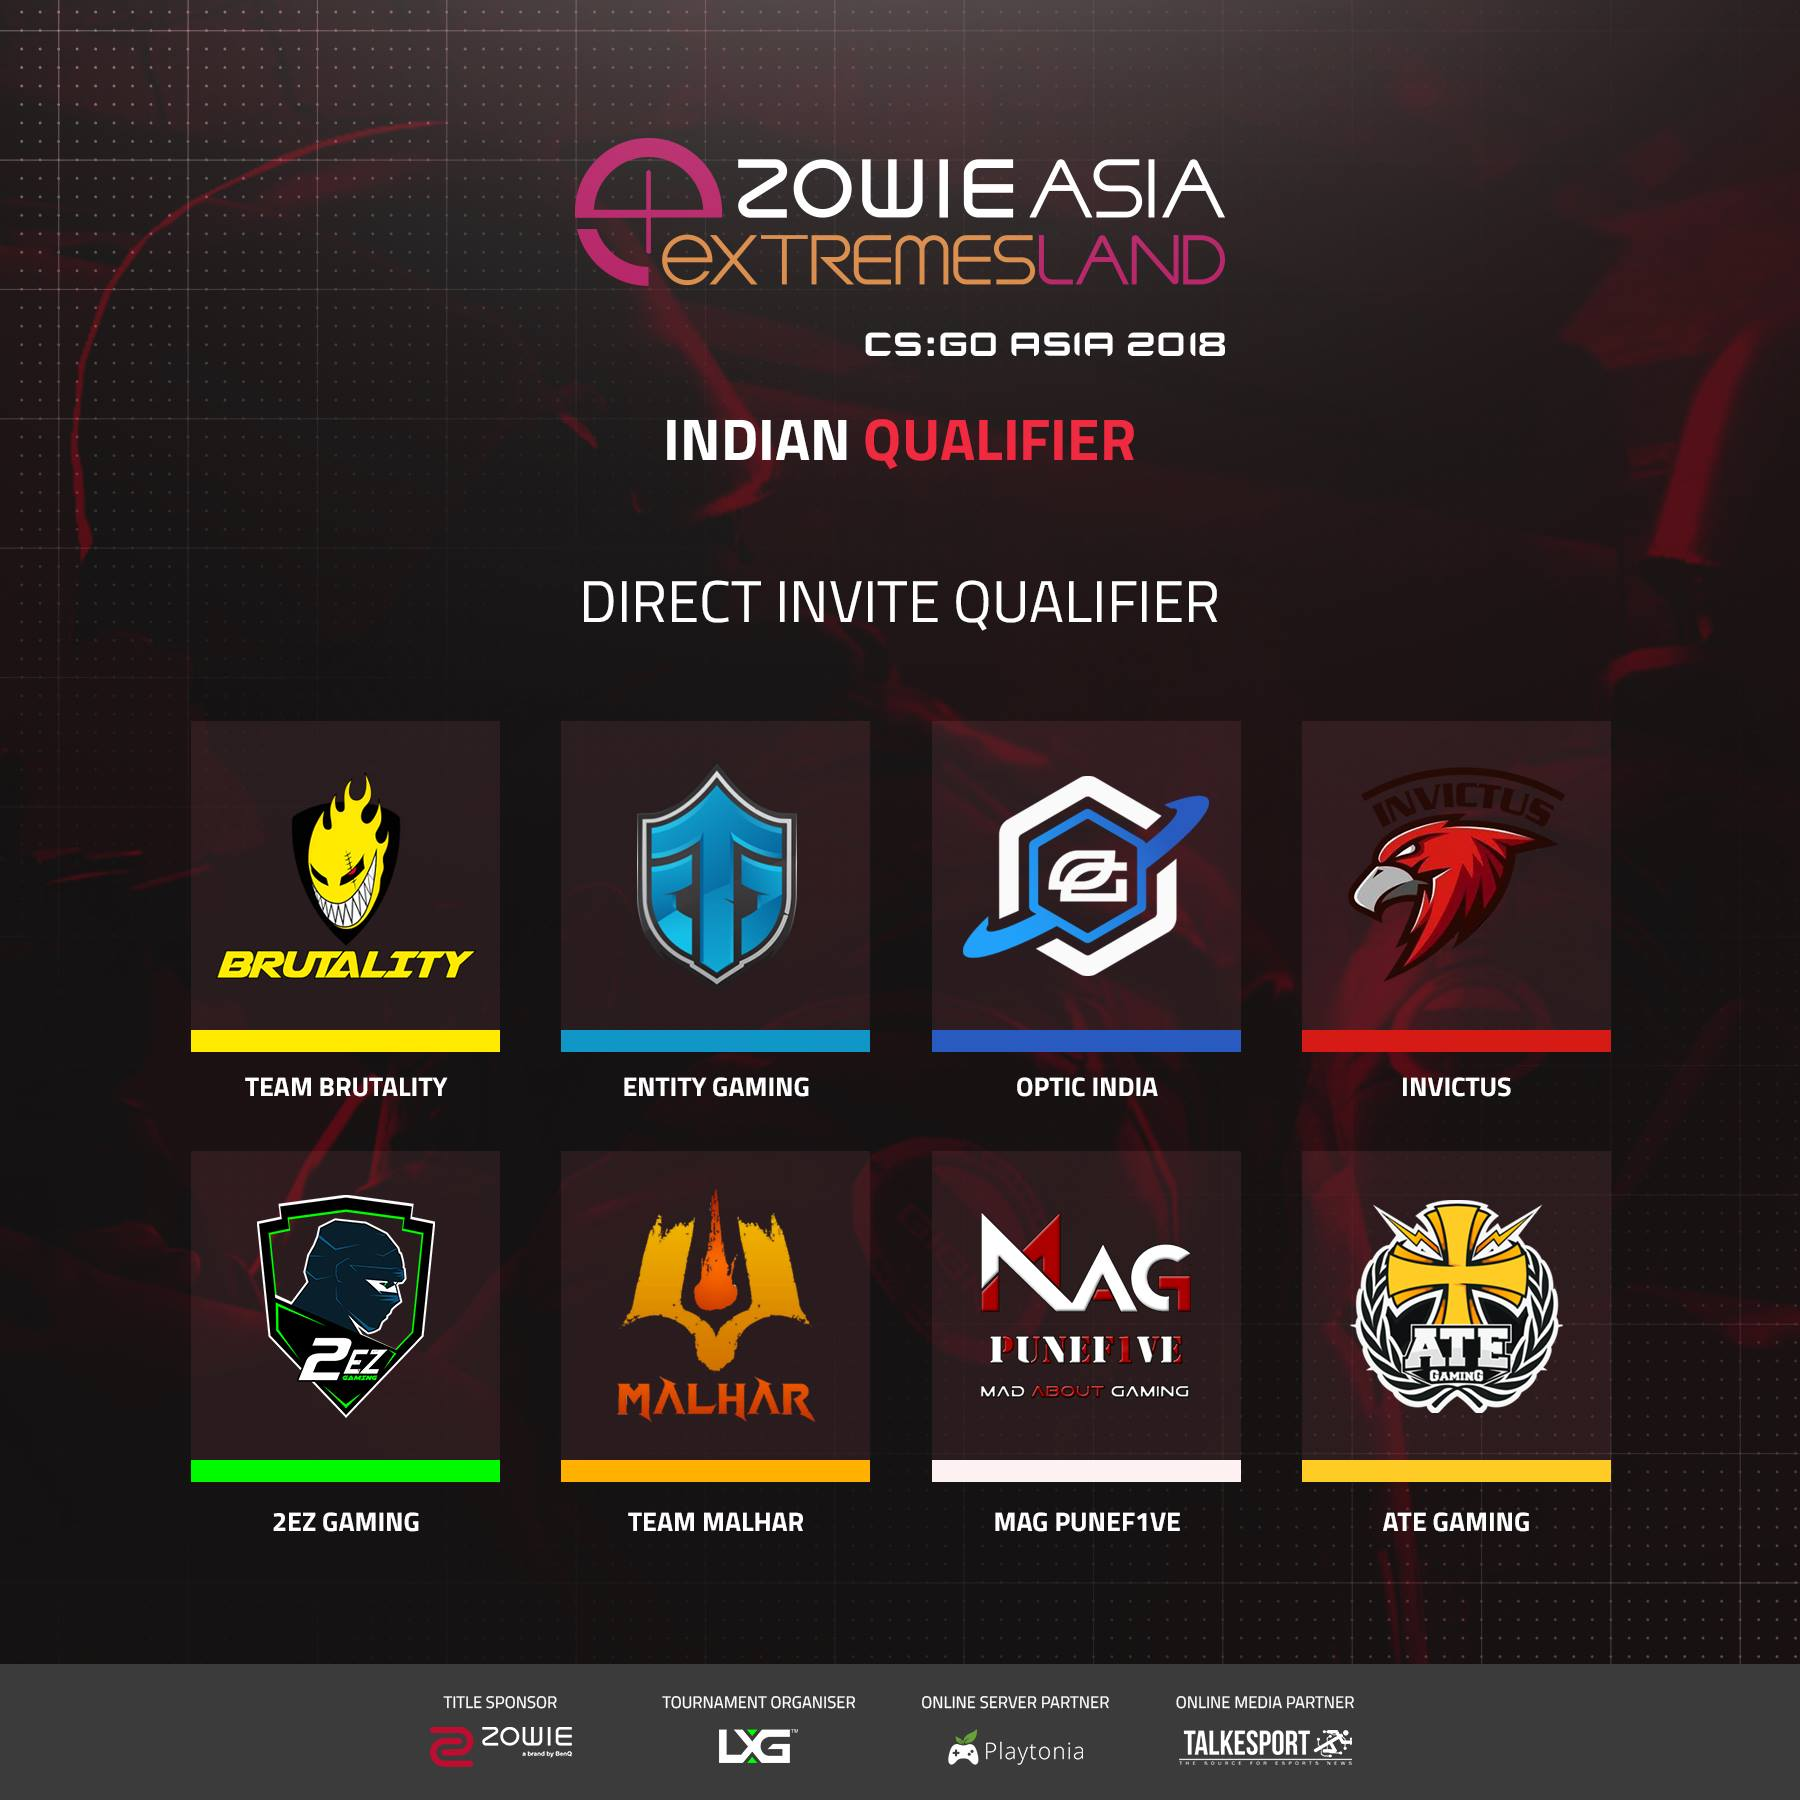 BenQ Zowie and LXG India Announce the List of Teams for the Direct Qualifiers to Zowie Asia Extremesland 2018